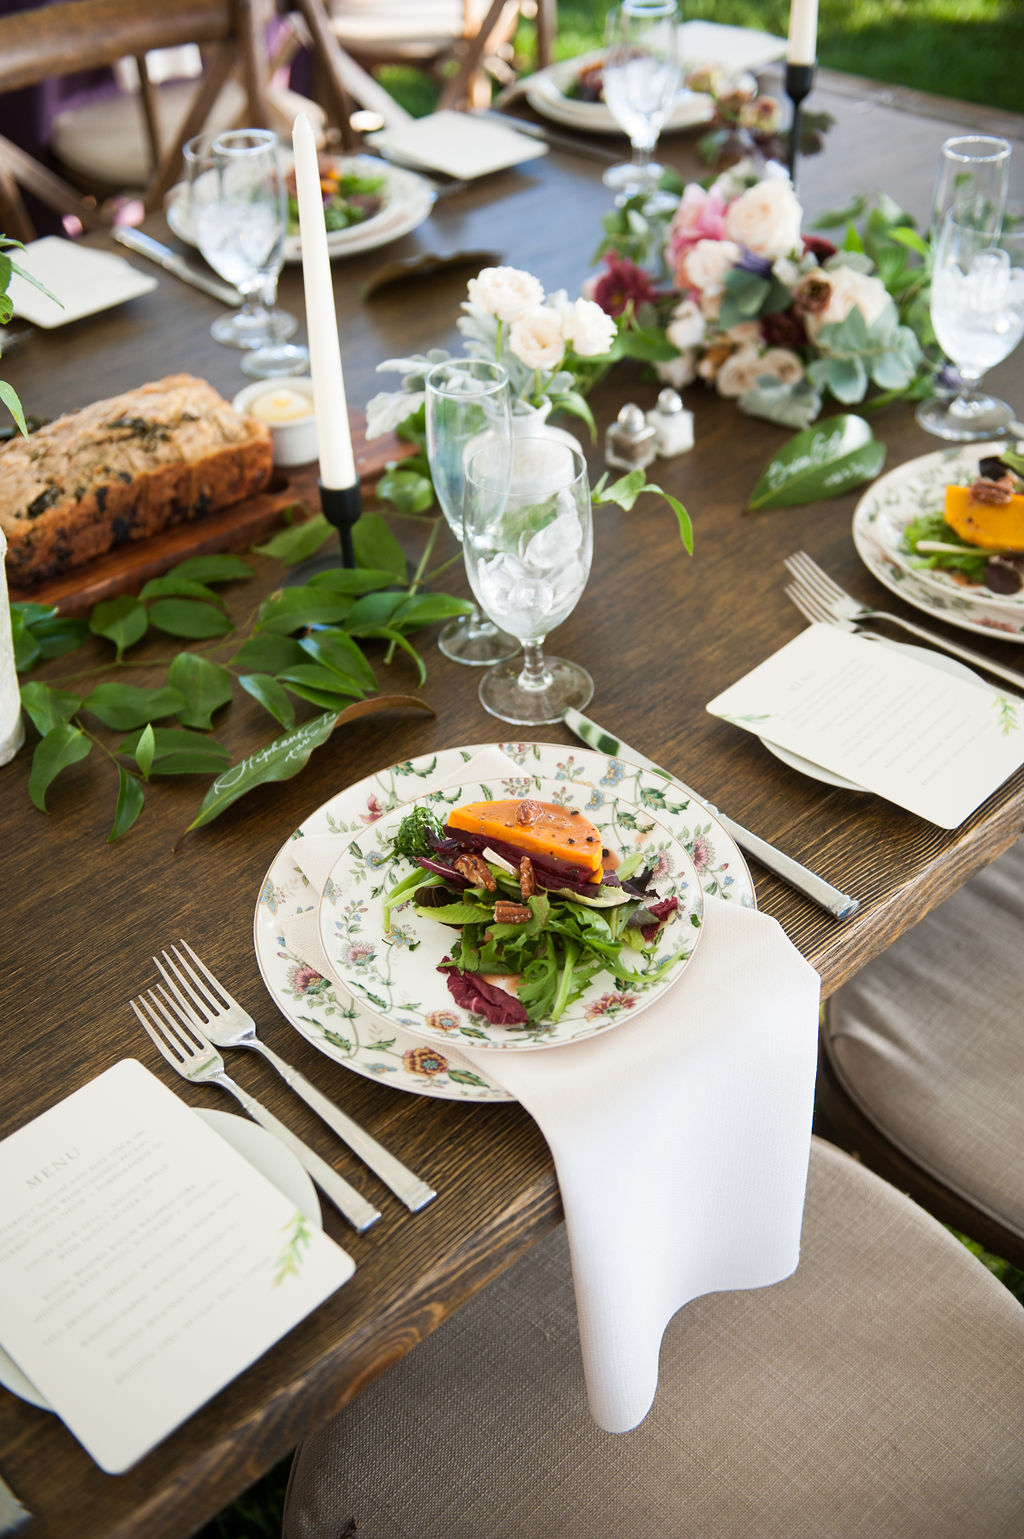 floral plates accented by simple white table linens and floral centerpieces